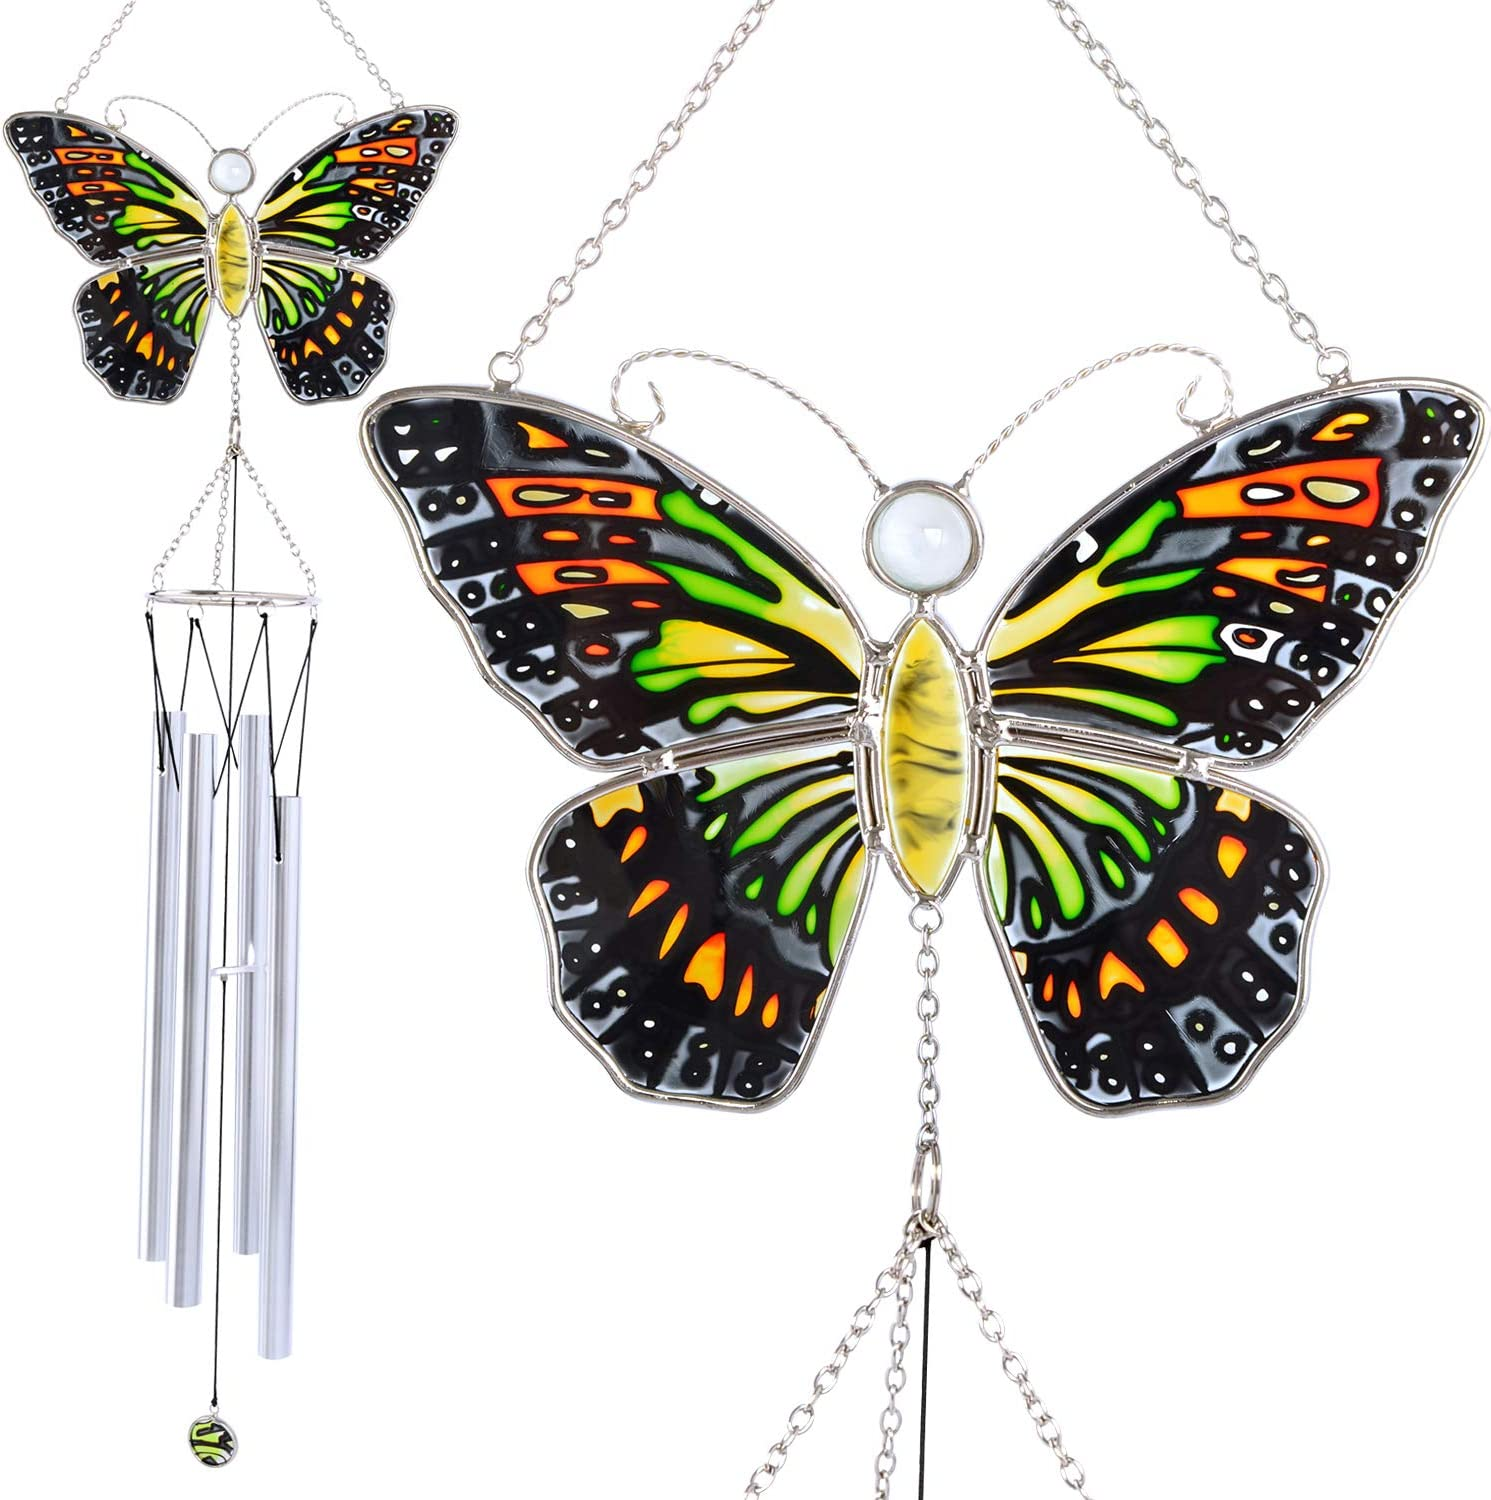 Butterfly wind chimes, Wind chimes unique outdoor, Gifts for women, Gifts for mom, Gifts for grandma, Memorial wind chimes, Birthday gifts for women, Christmas decorations, Garden decor, Yard decor